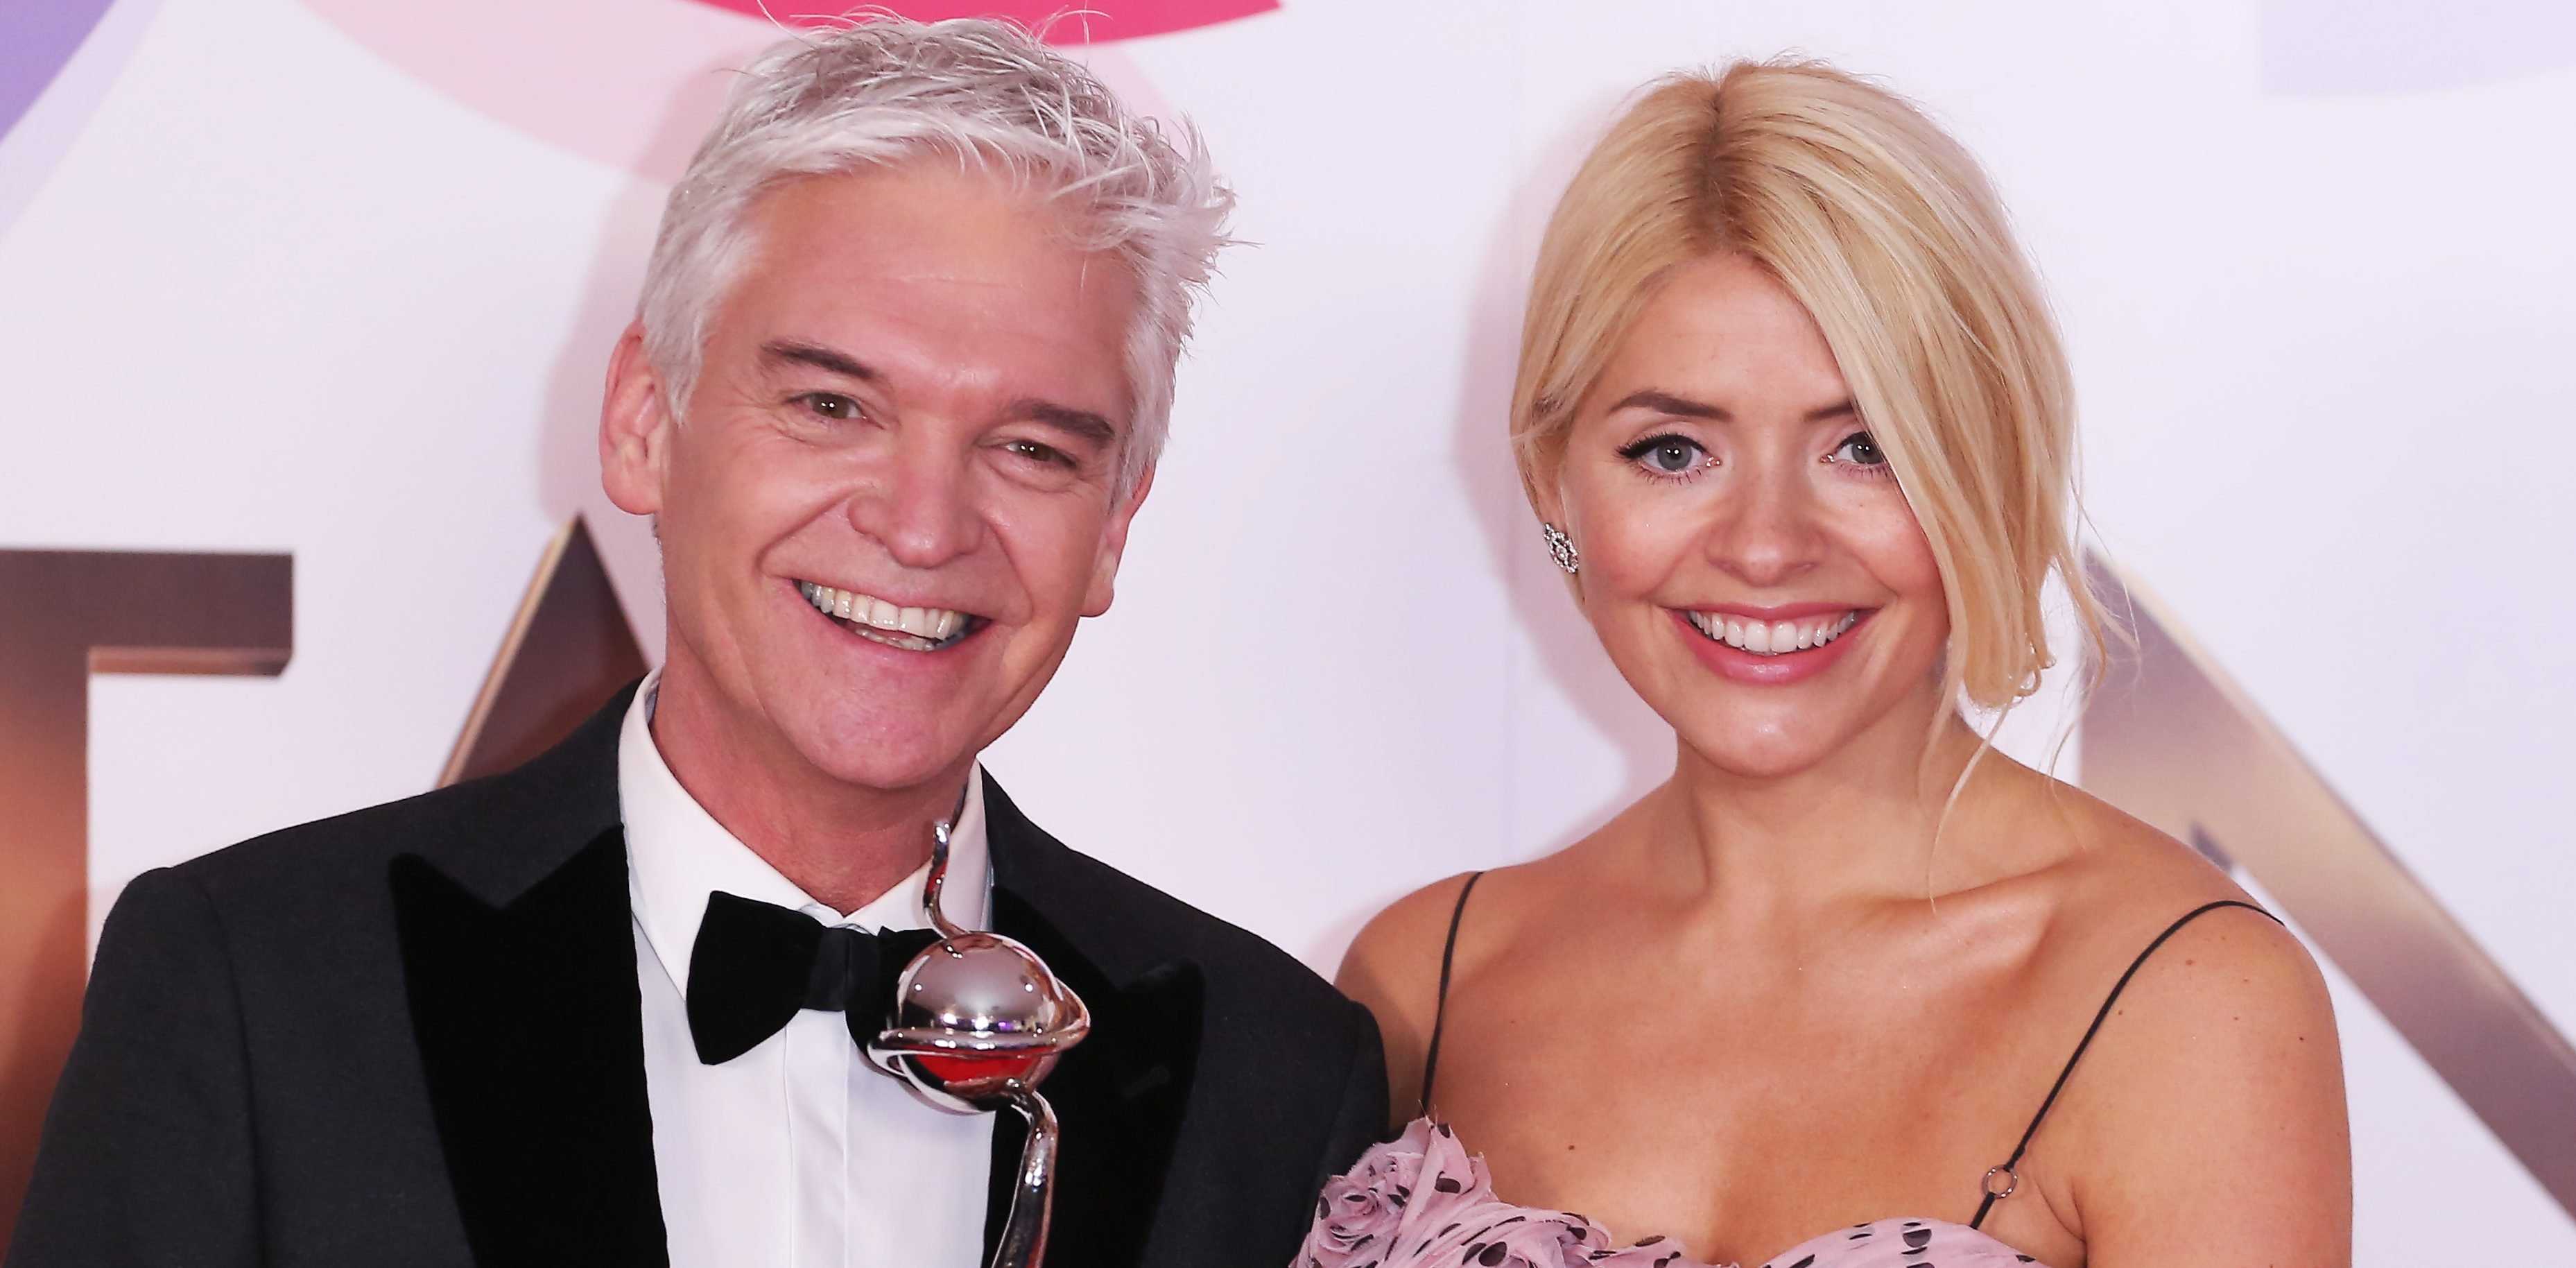 Declan Donnelly jokes that ITV bosses force Holly Willoughby to holiday with Schofe